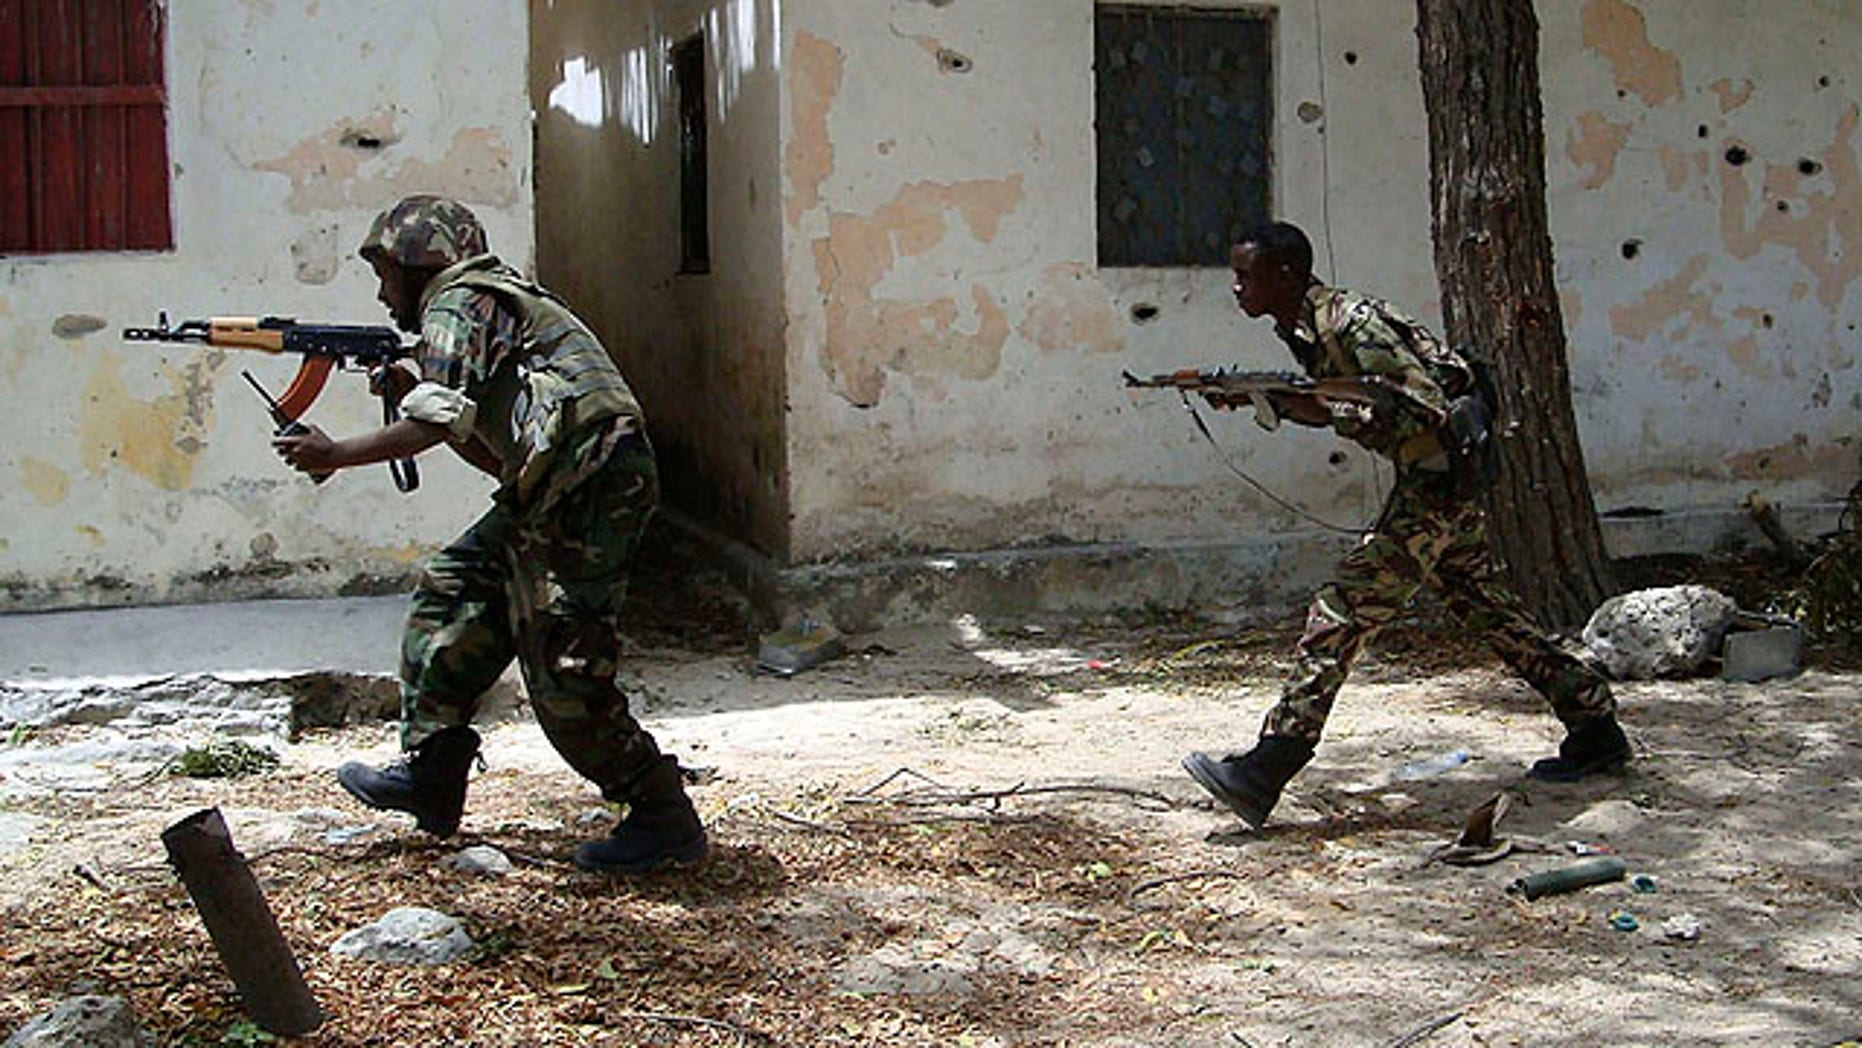 Sept. 27, 2010: Somali  government forces run in a street during skirmishes with insurgents from the al-Qaida aligned terrorist group Al-Shabaab in the Wardigley neighborhood in Mogadishu, Somalia.